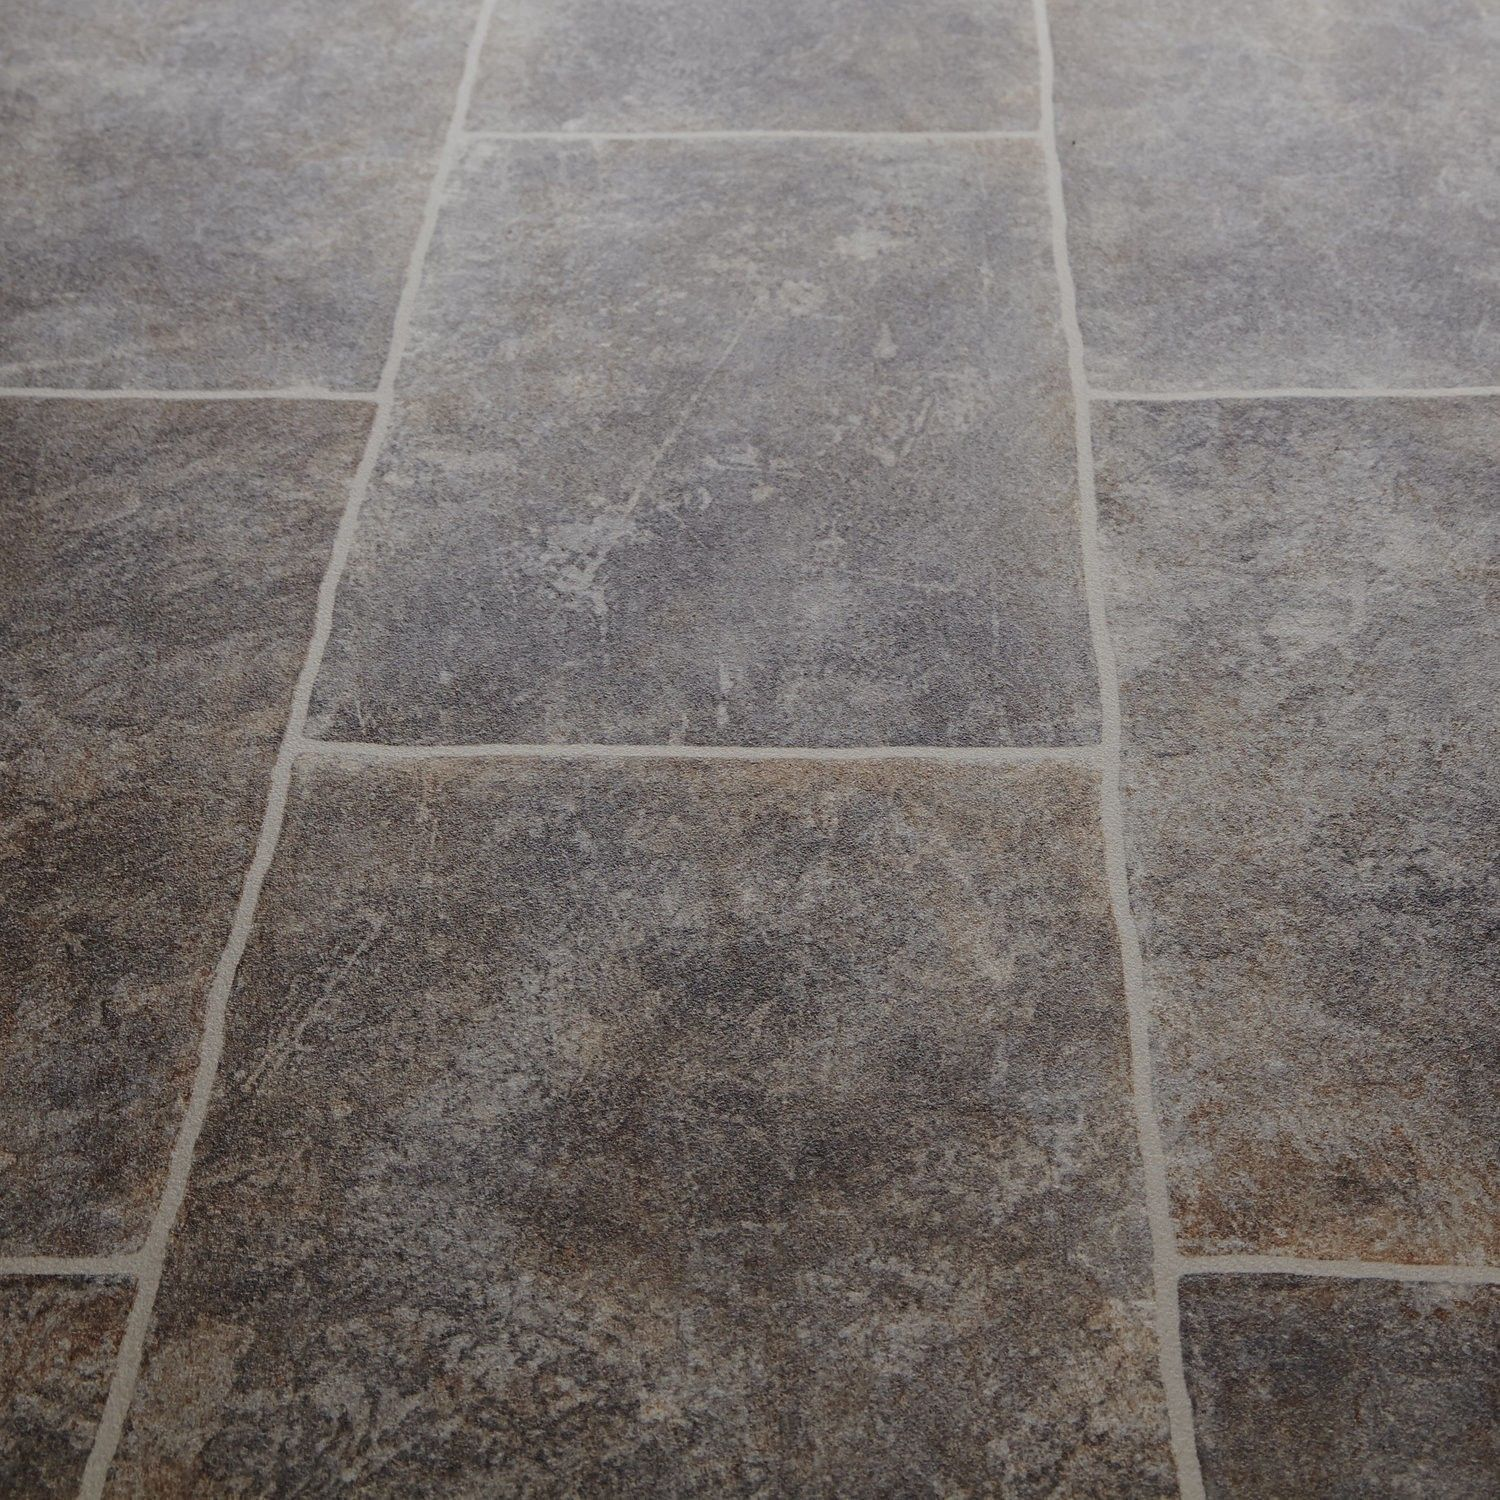 to stylish floor your what design in stone tile for flooring shower river use ideas bathroom home